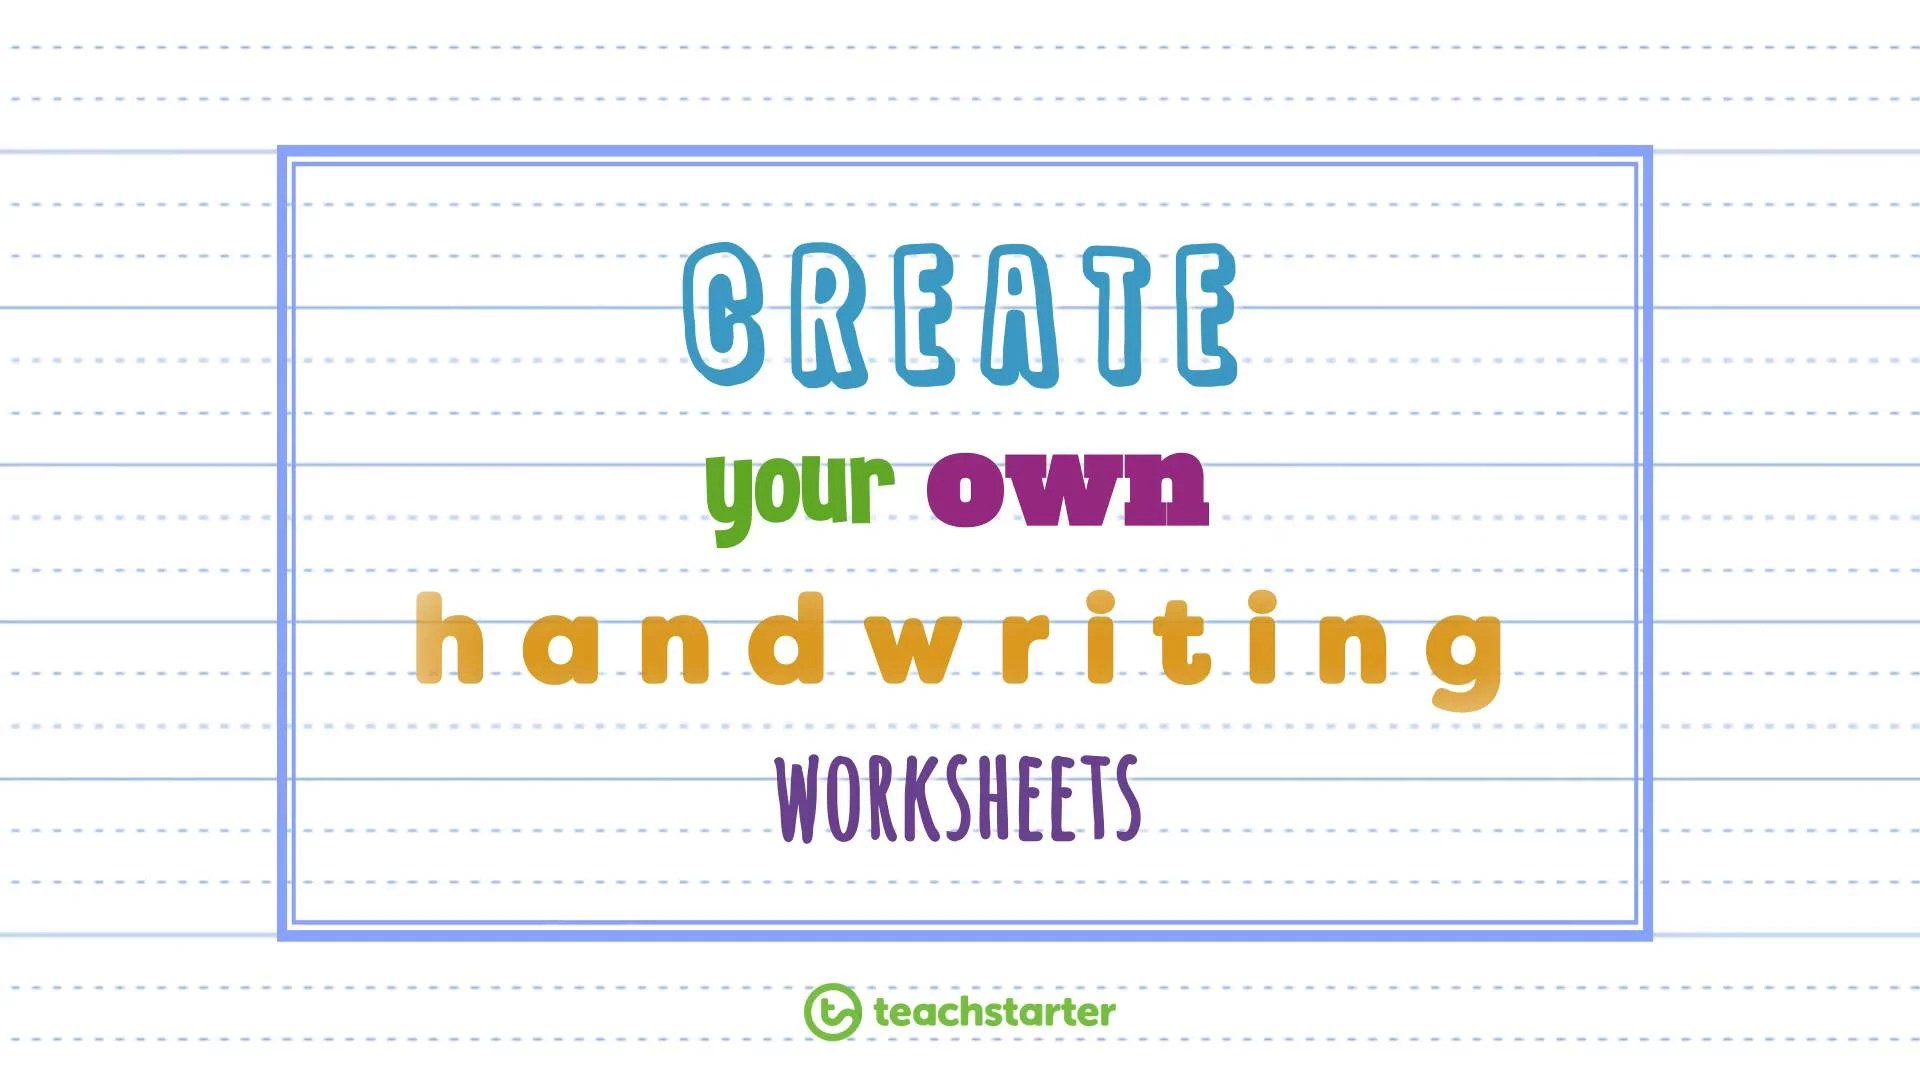 Create Your Own Handwriting Sheets Easily   Handwriting Generator [ 720 x 1280 Pixel ]